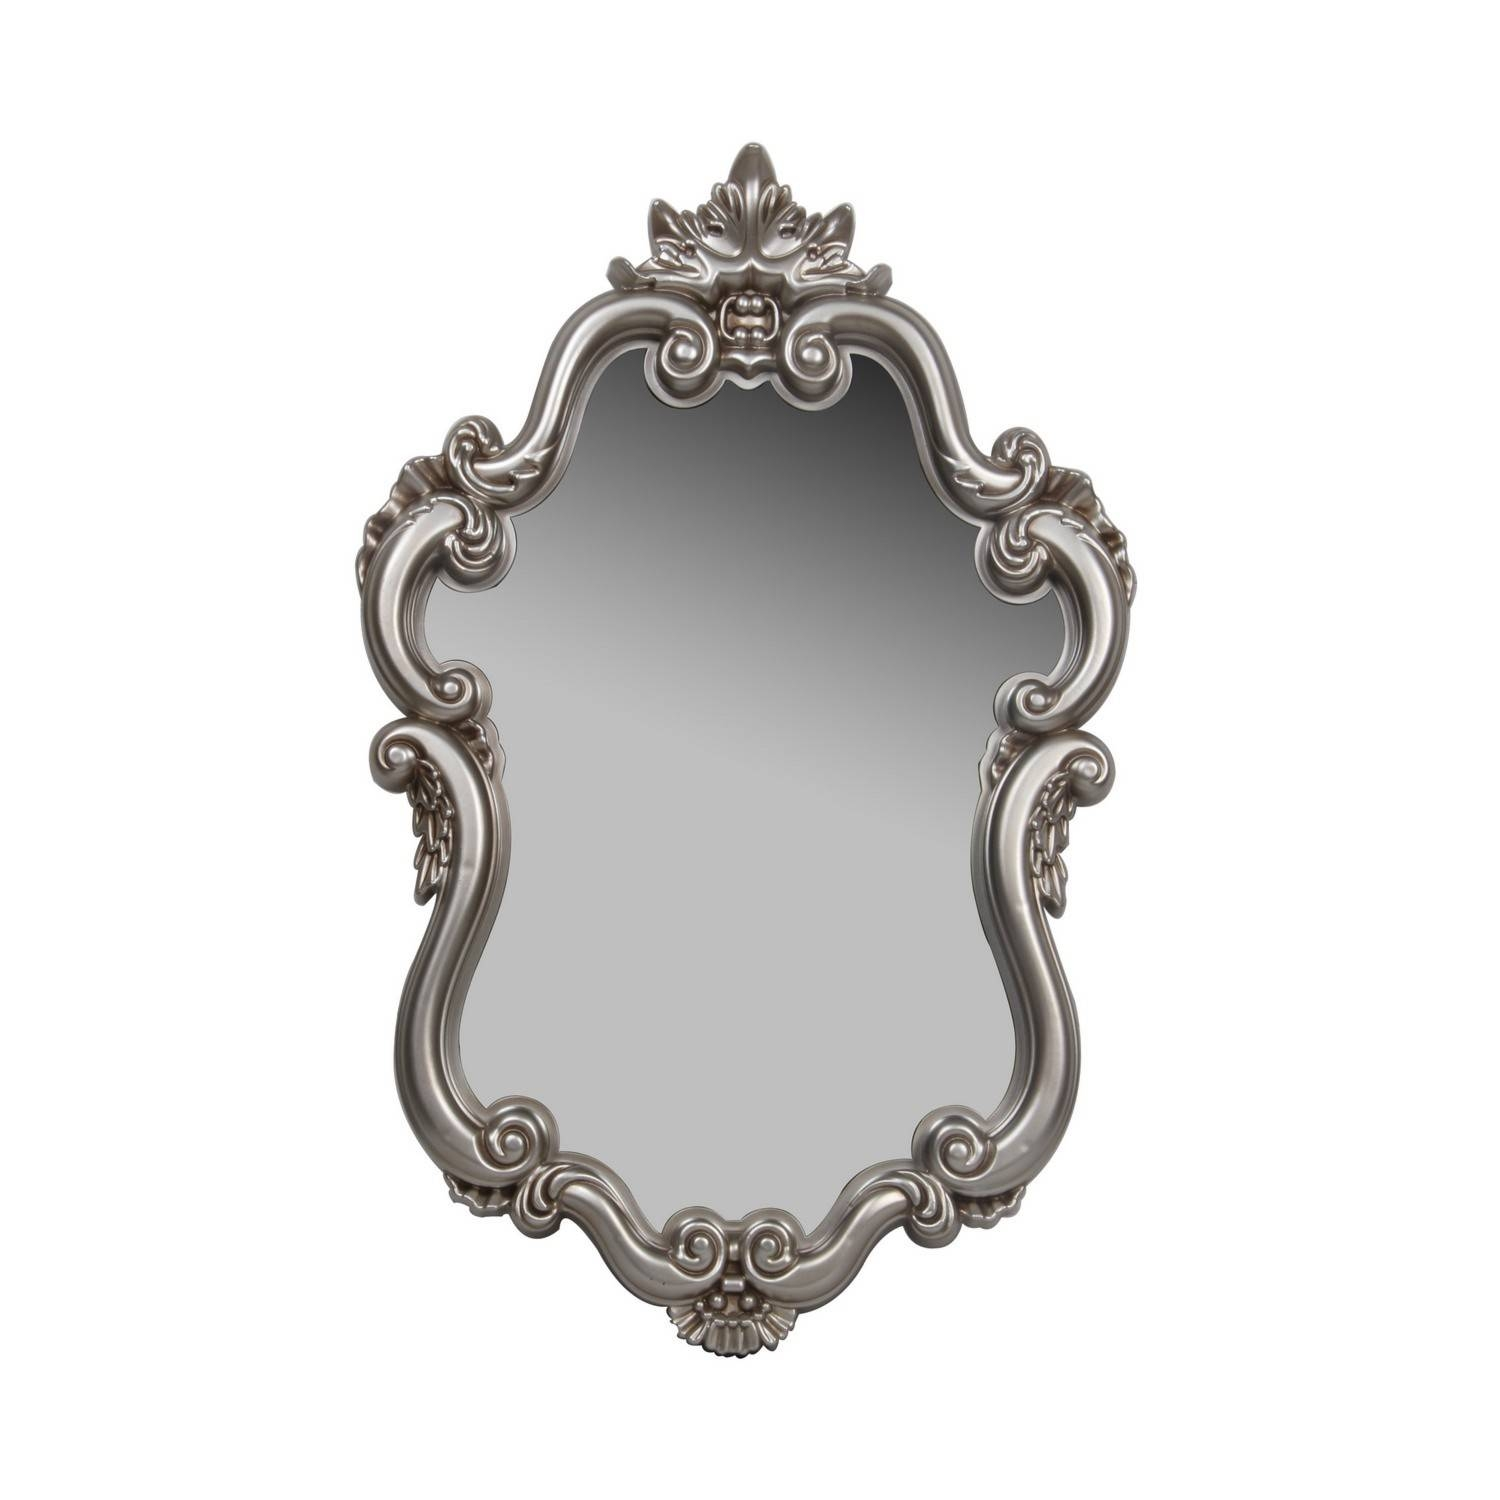 Large Oval Baroque Mirror Wall Acedf – Surripui Inside Silver Baroque Mirrors (View 8 of 15)